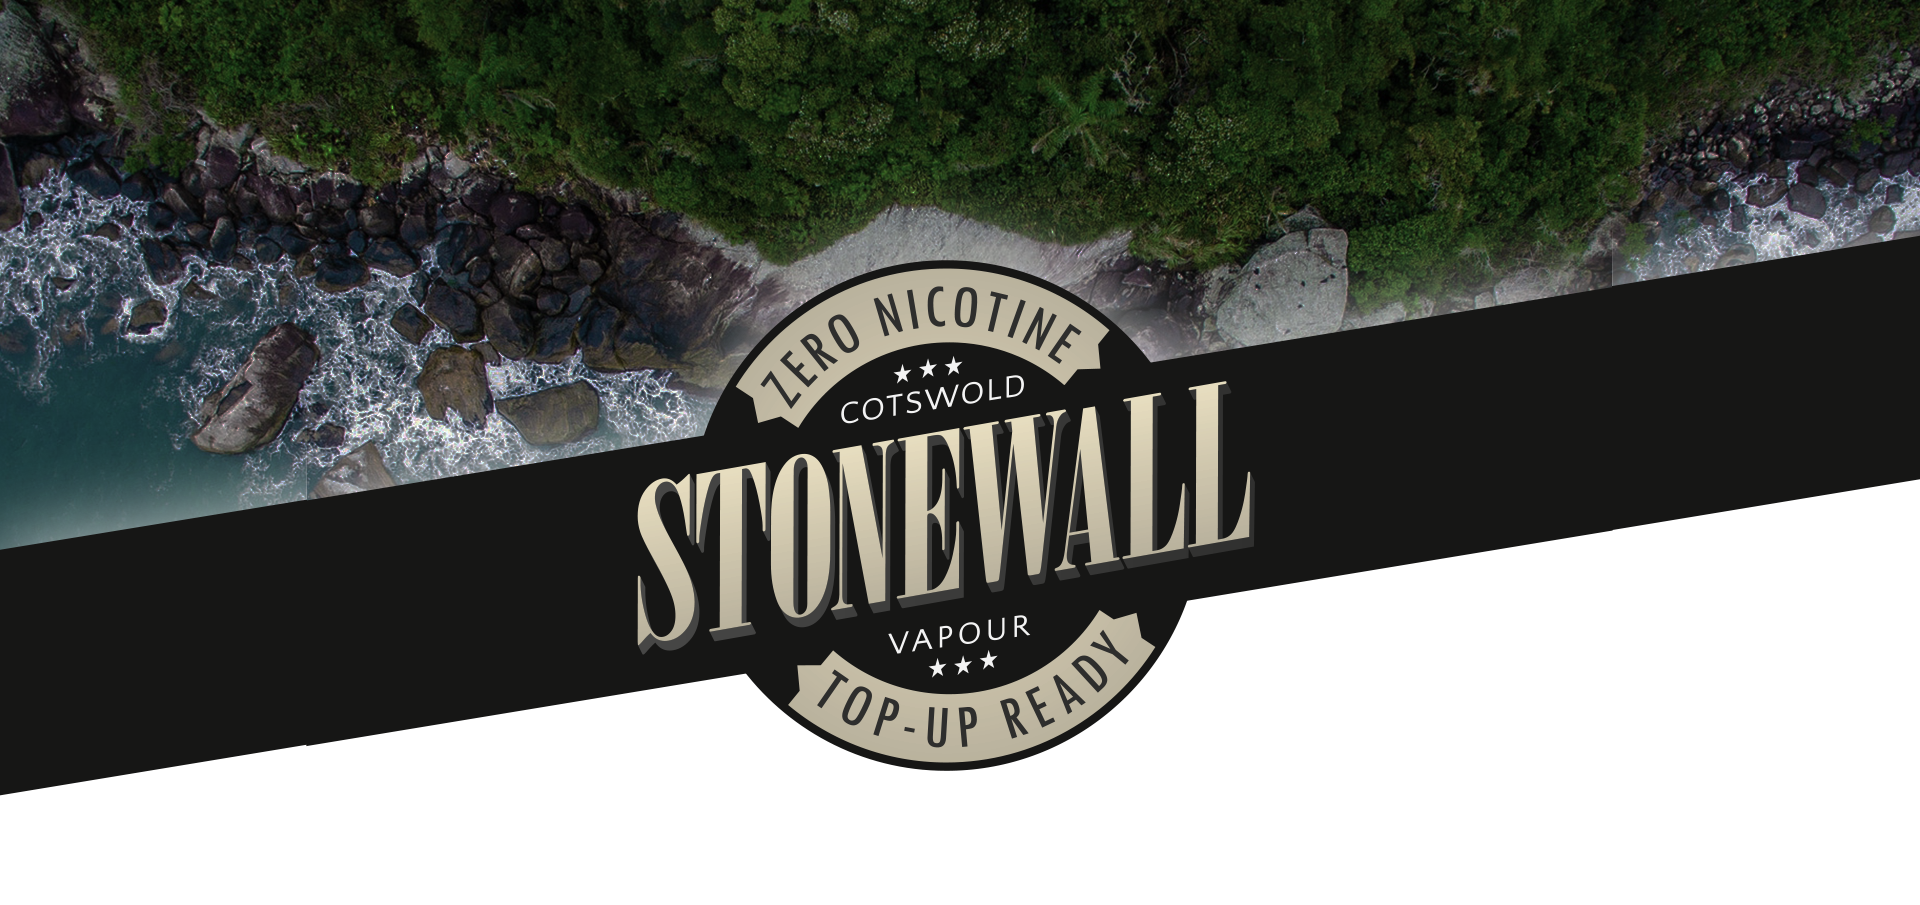 Cotswold Vapour: Stonewall